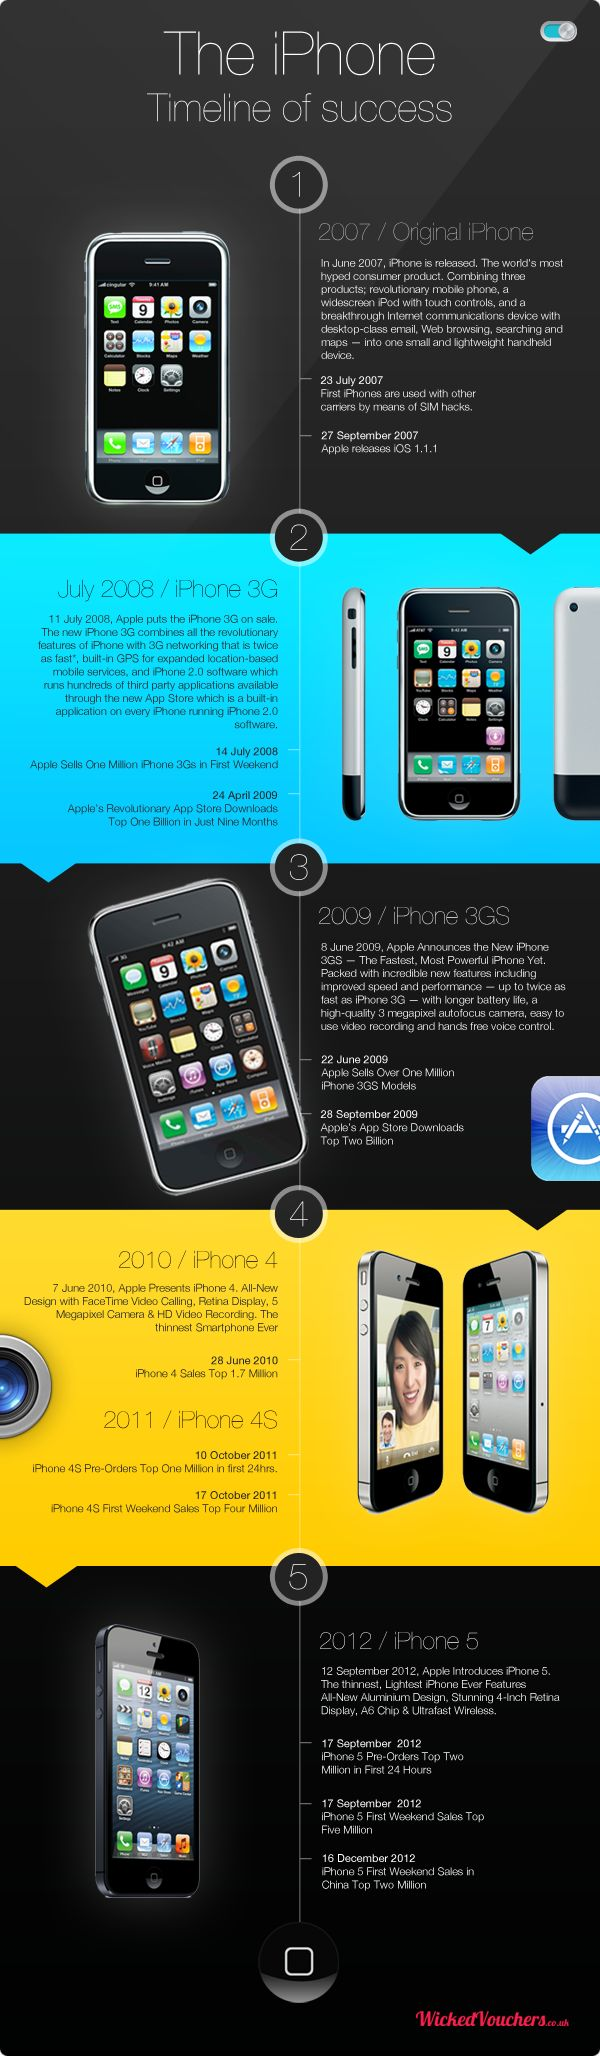 83 best images about iPhone Infographics on Pinterest ...